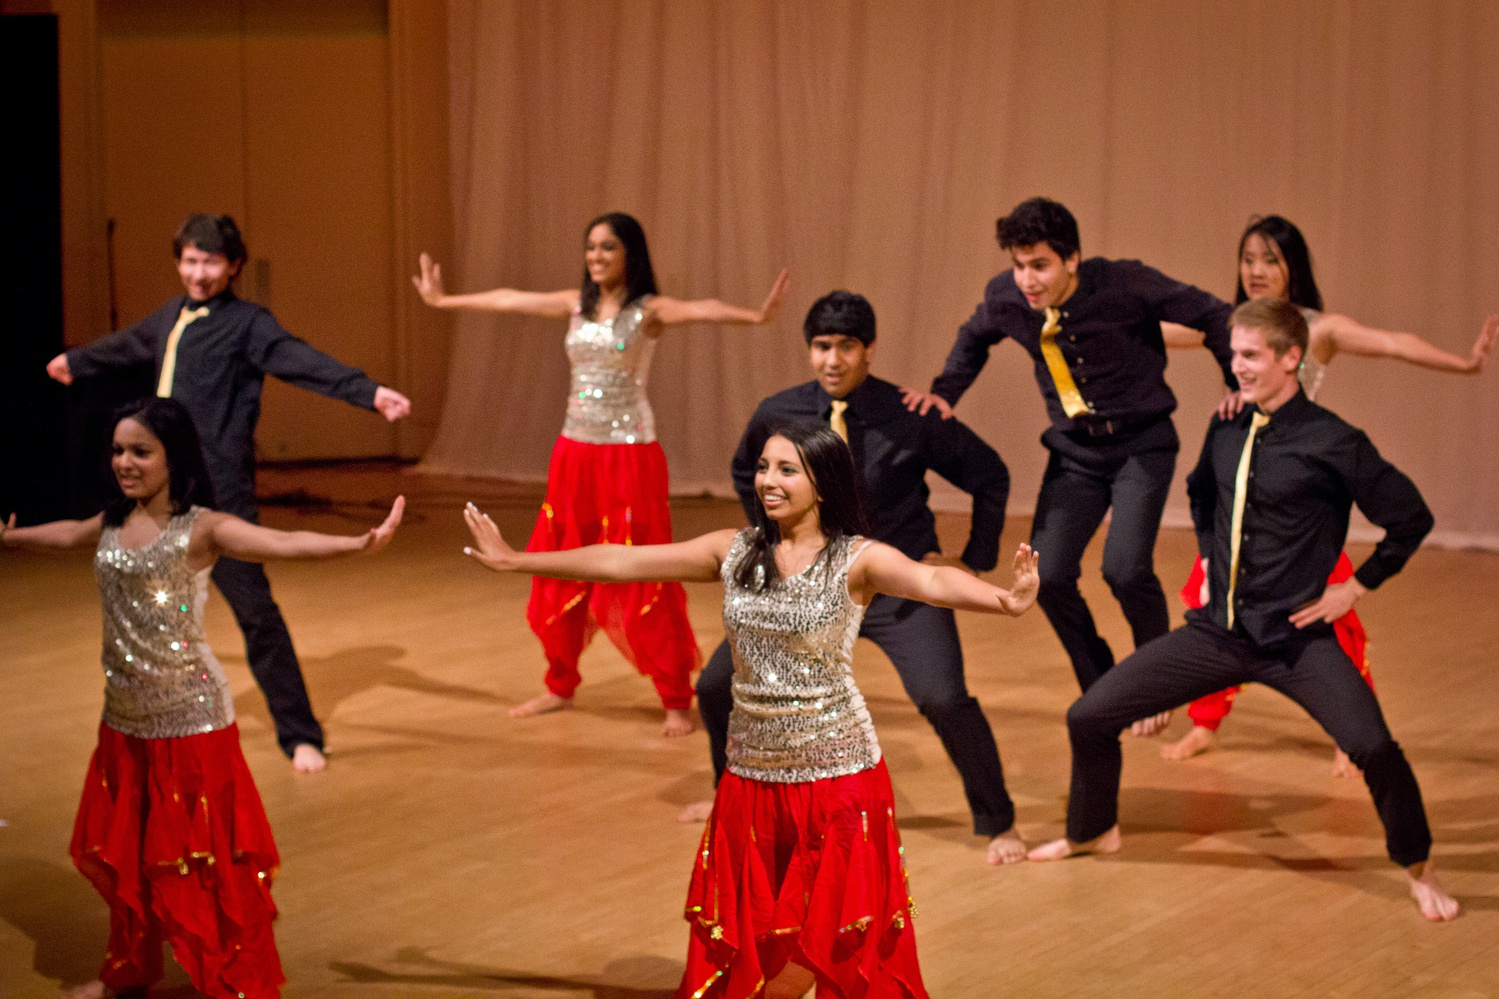 MIT Mirchi, a co-ed Bollywood dance team from MIT performs at Raunak, a yearly South Asian charity dance show. Dance teams from Borwn, MIT, Dartmouth, Columbia, Tufts, DC, NYU, UMass, as well as Harvard's Expressions, Breakers, AADT, SADC performed in this intercollegiate dance show.